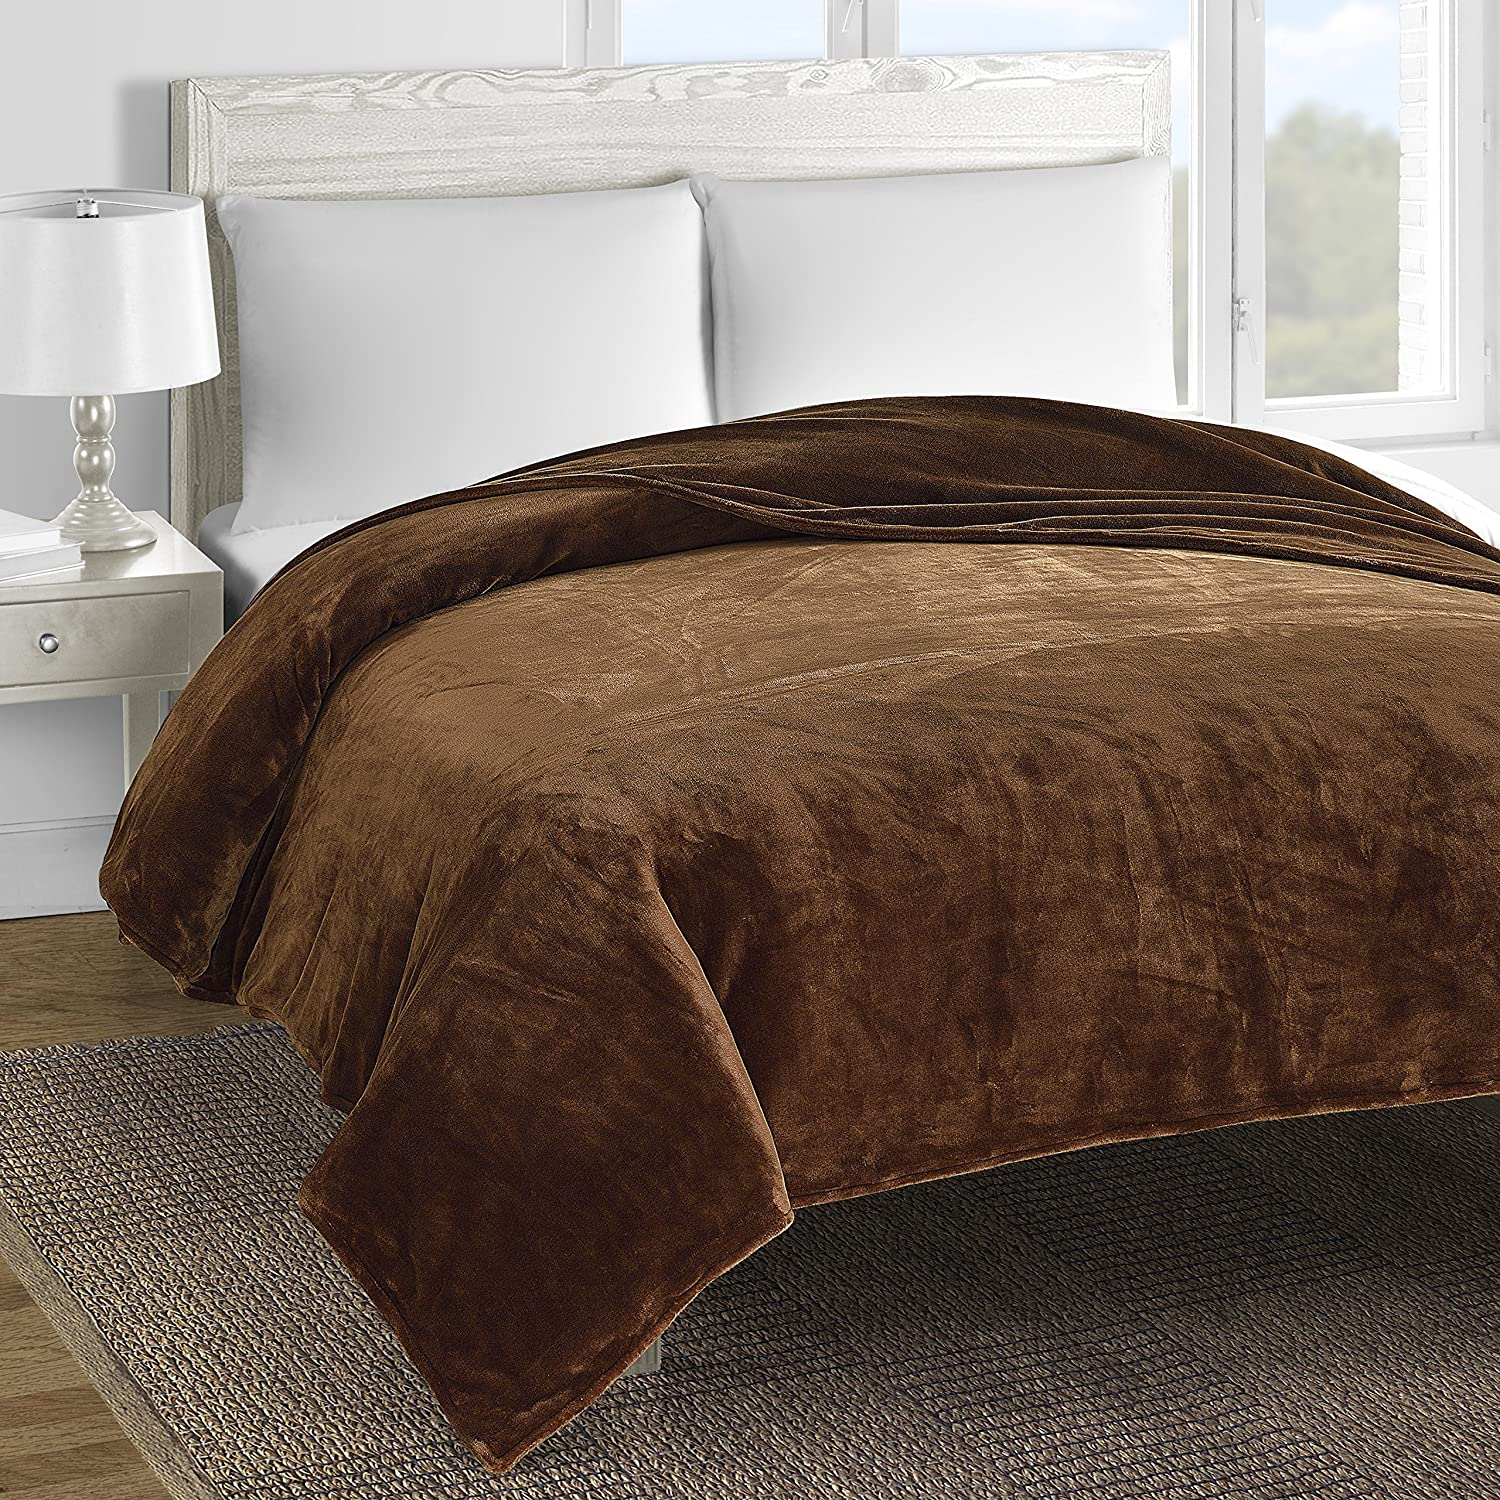 Layer Soft and Cozy Fleece Bed Blanket (Twin, Brown